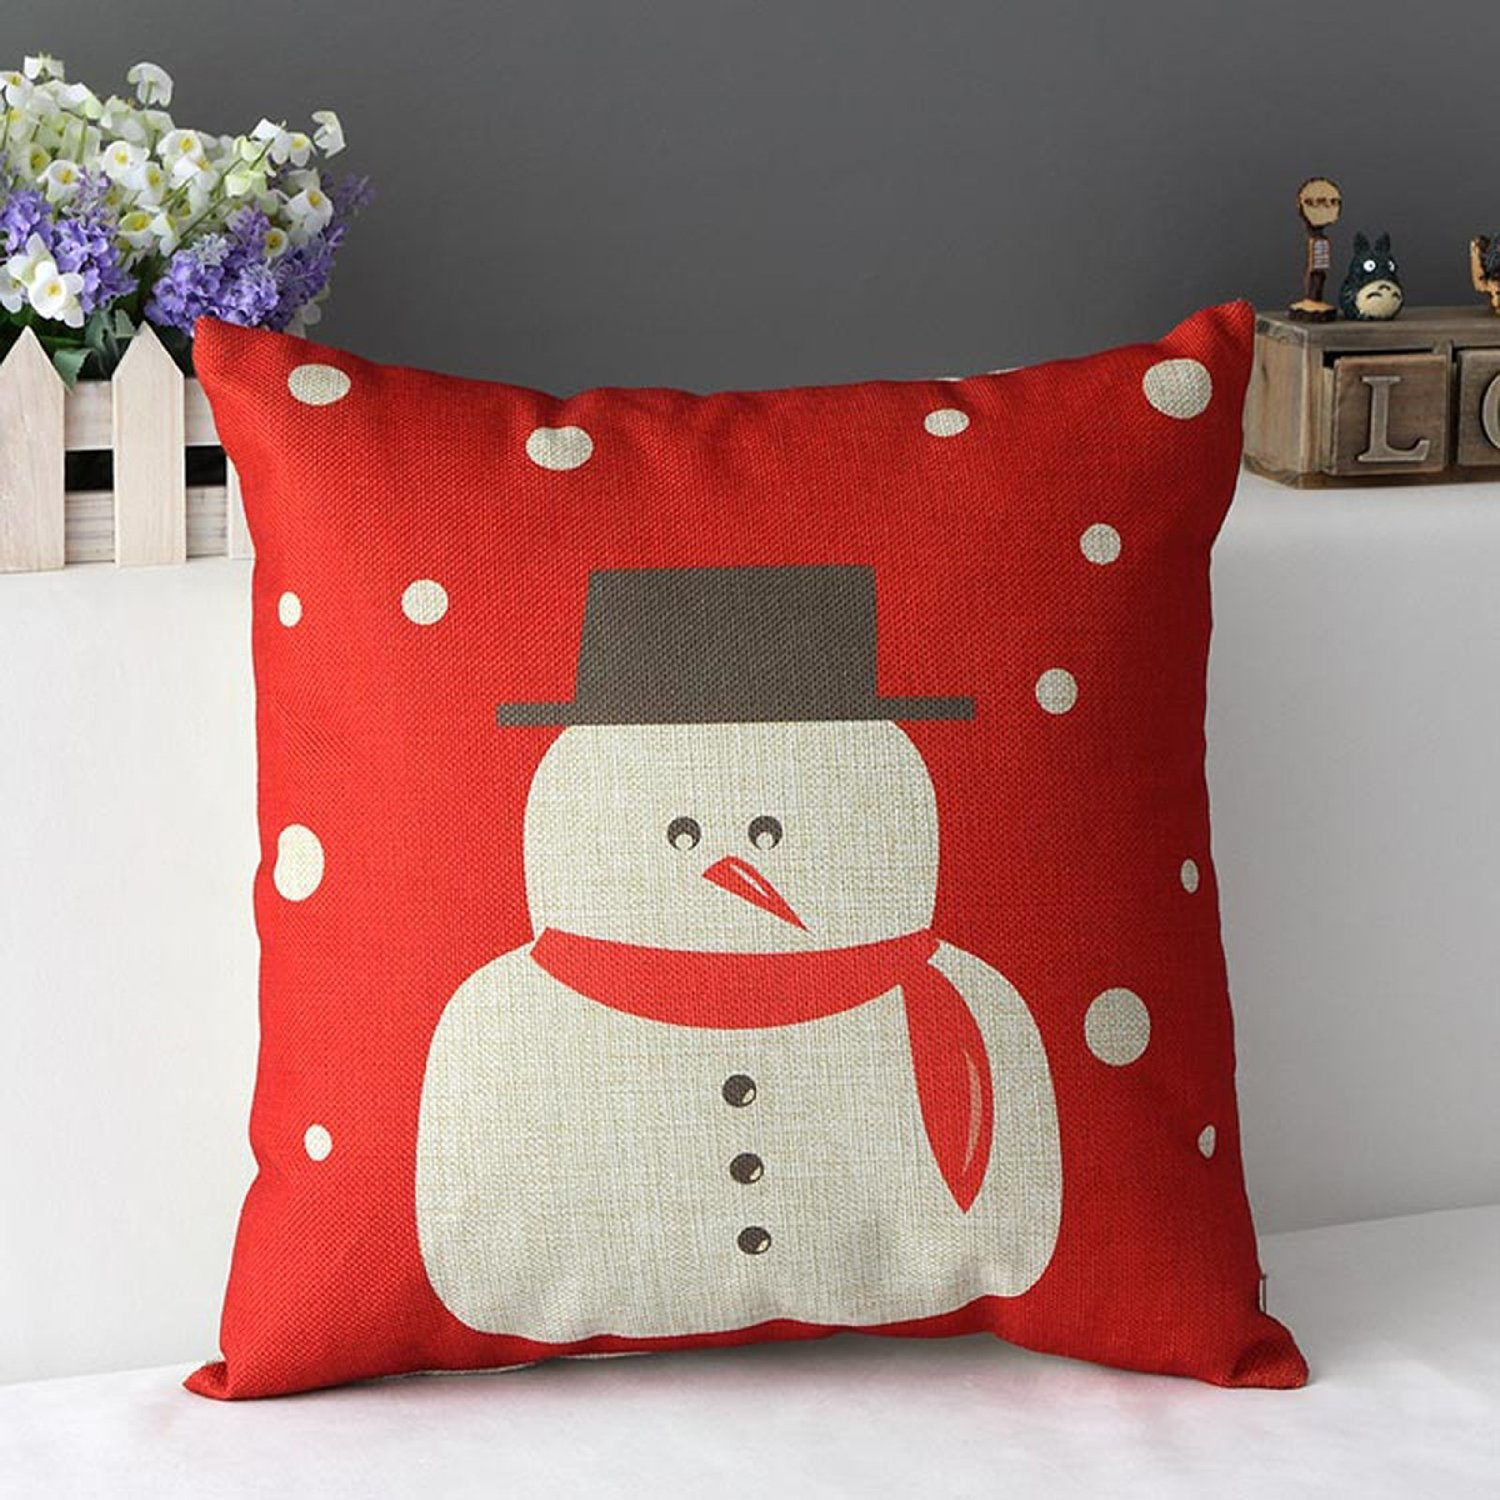 Cotton Linen Pillow Case Cushion Cover Home Decorative Snowman